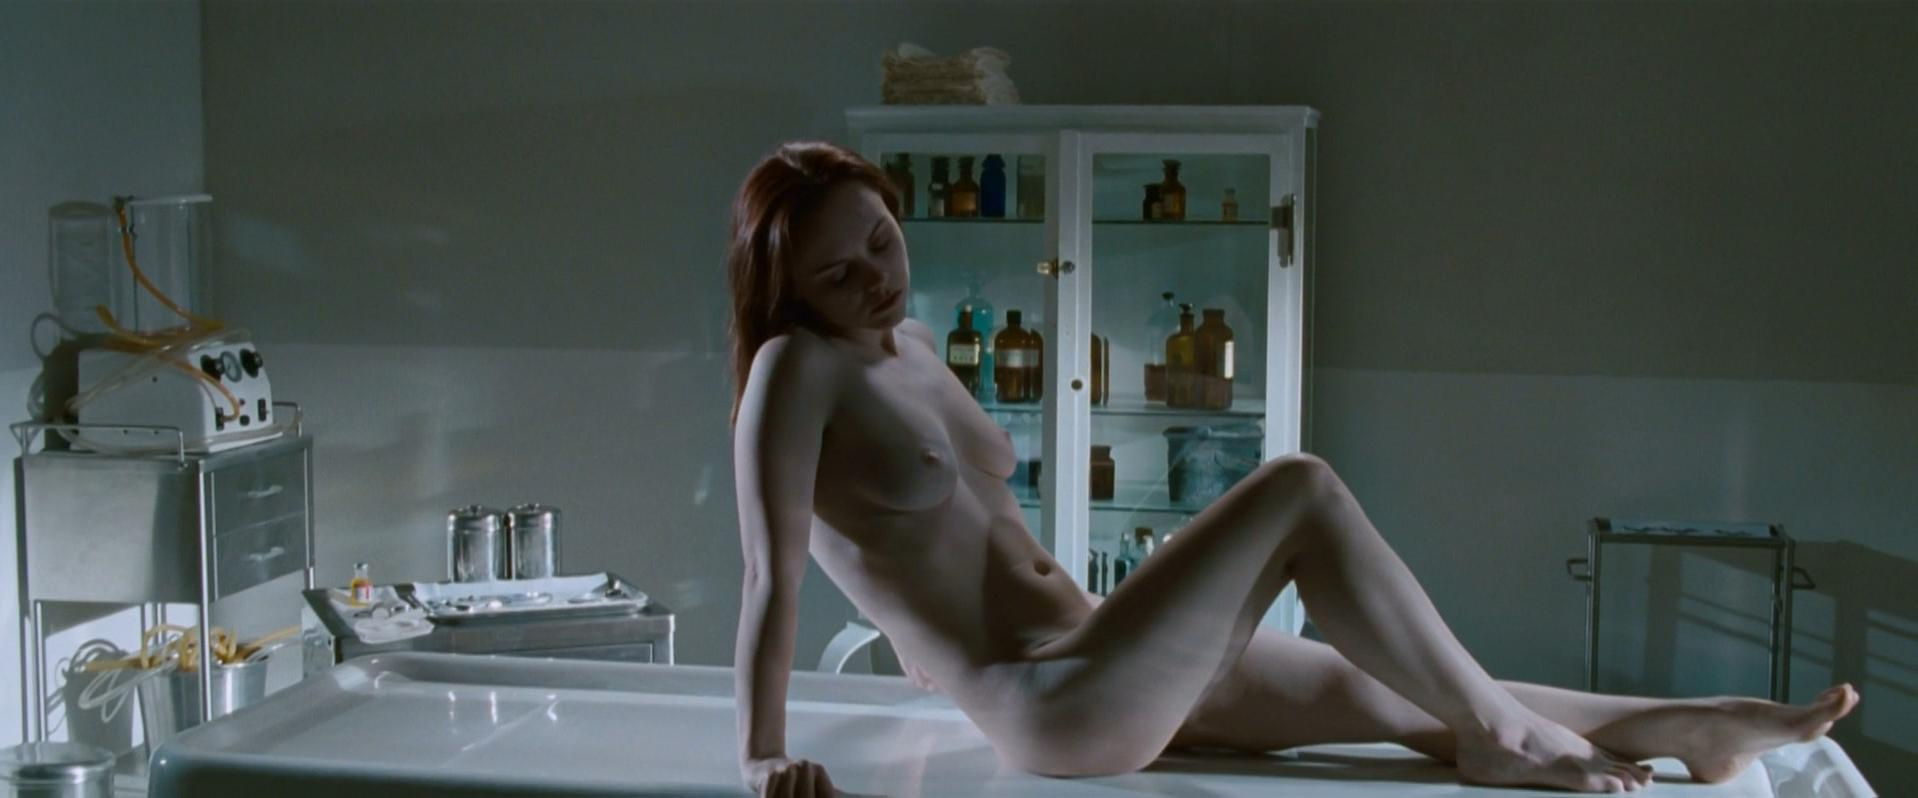 pussy-photo-christina-ricci-sex-movies-jackson